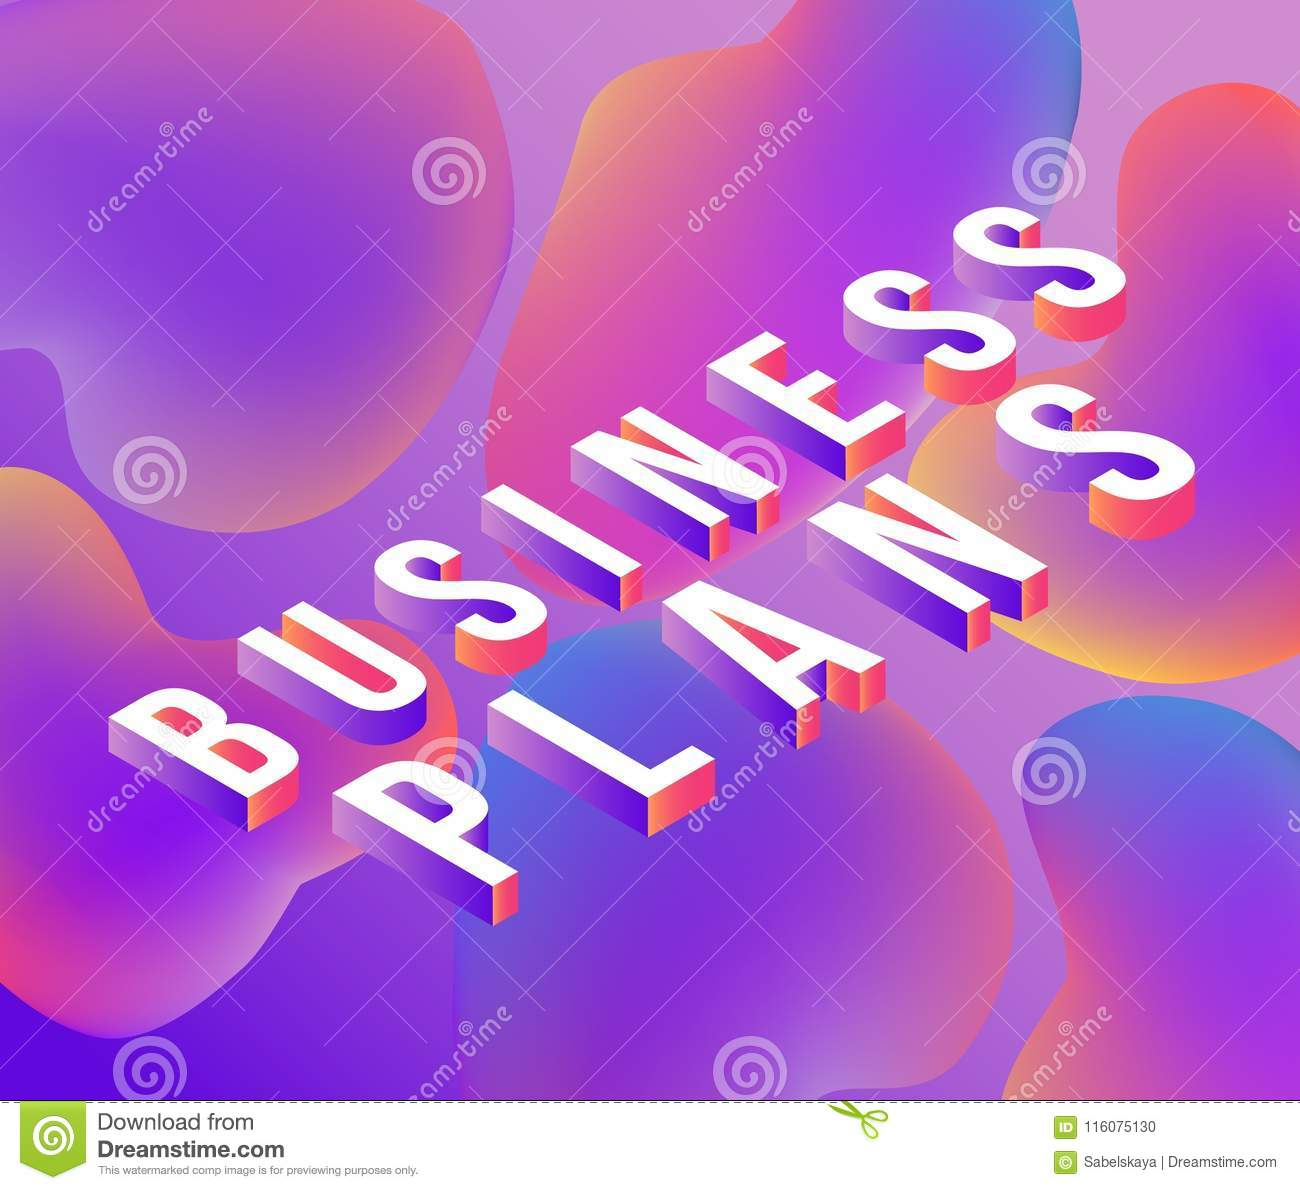 Business Plans Isometric Text Design With Letters On Abstract ...